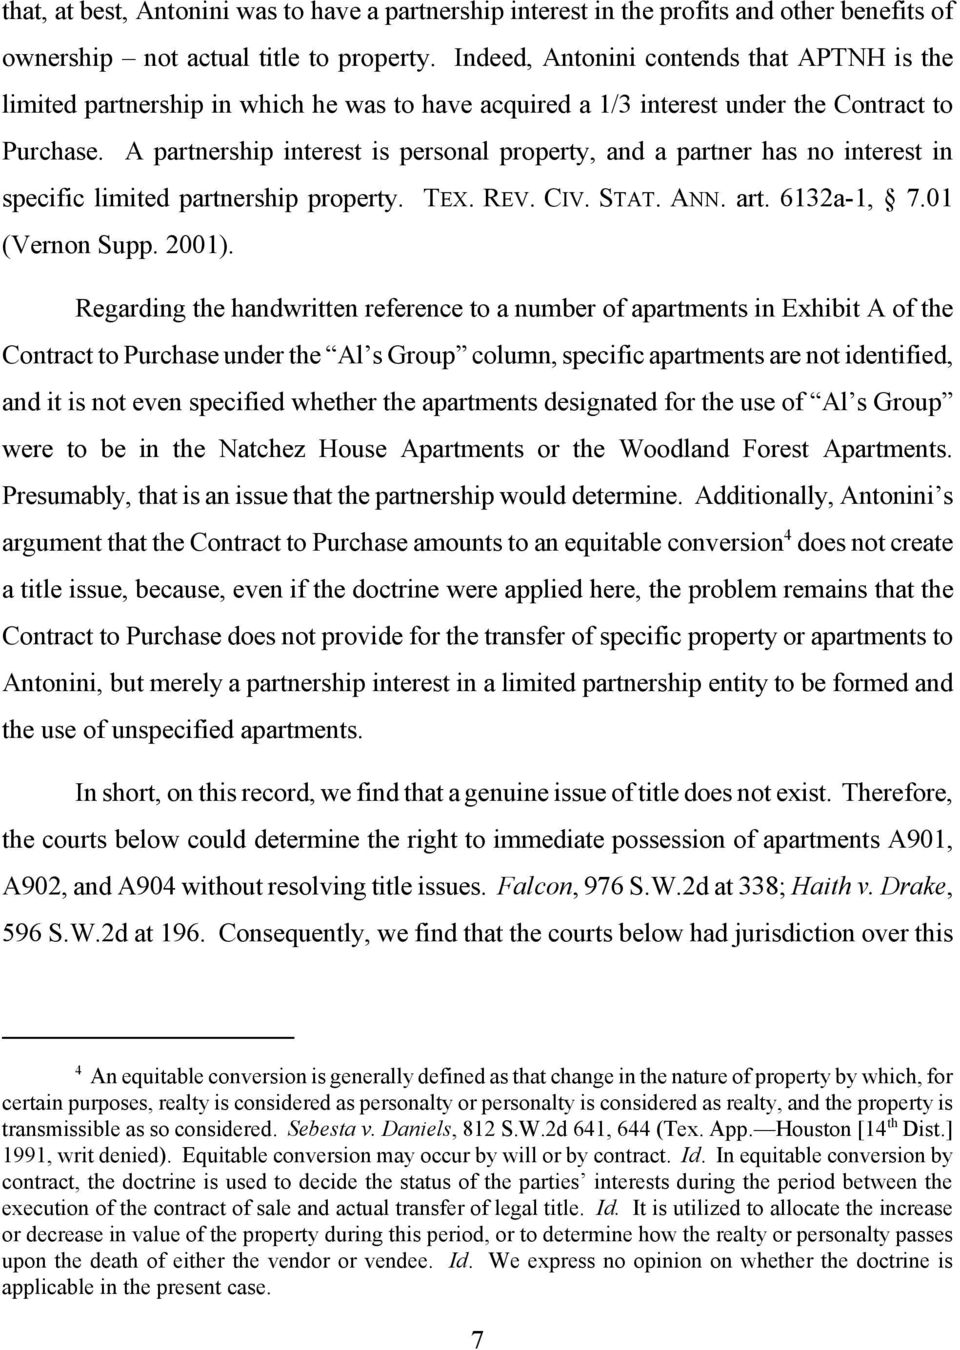 A partnership interest is personal property, and a partner has no interest in specific limited partnership property. TEX. REV. CIV. STAT. ANN. art. 6132a-1, 7.01 (Vernon Supp. 2001).